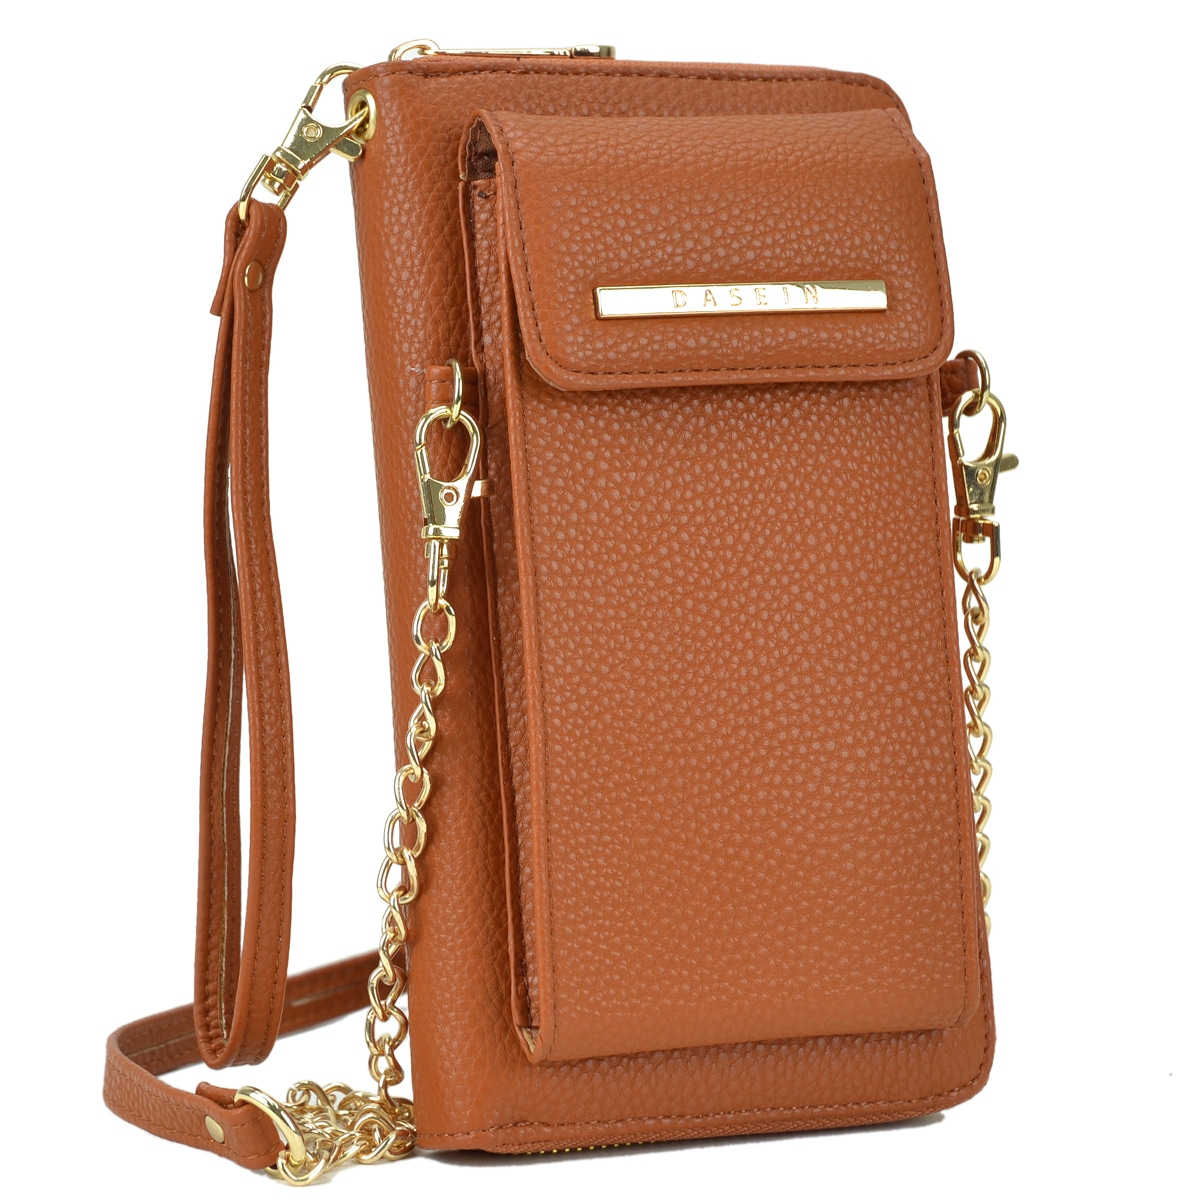 90a7398d8fc Shop Dasein Faux Leather Organizer Crossbody Bag w/ Detachable Chain Strap  - On Sale - Free Shipping On Orders Over $45 - Overstock - 18267040